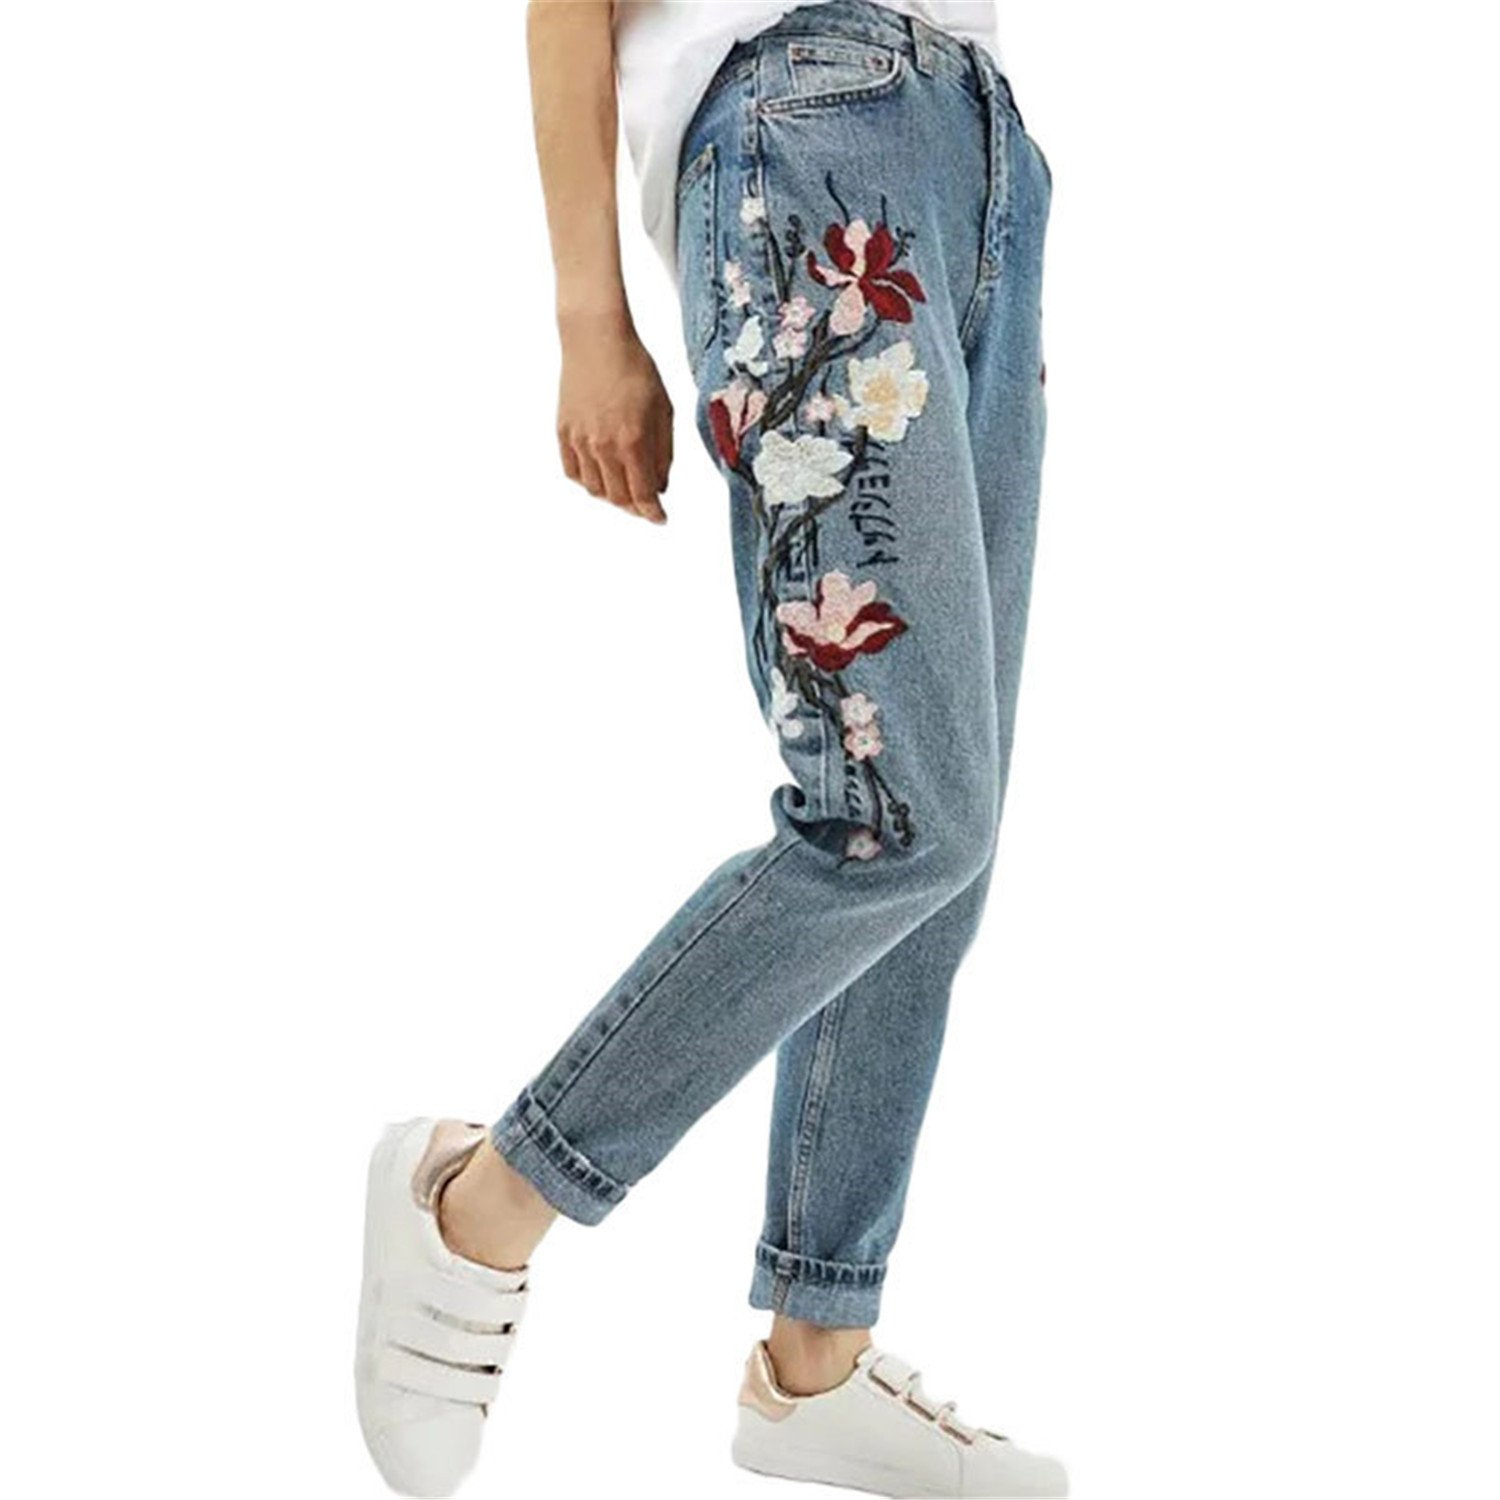 Hoared Casual Vintage Embroidered Flowers Jeans Woman Bottoms Pants 2017 Fashion Long Pants Sale